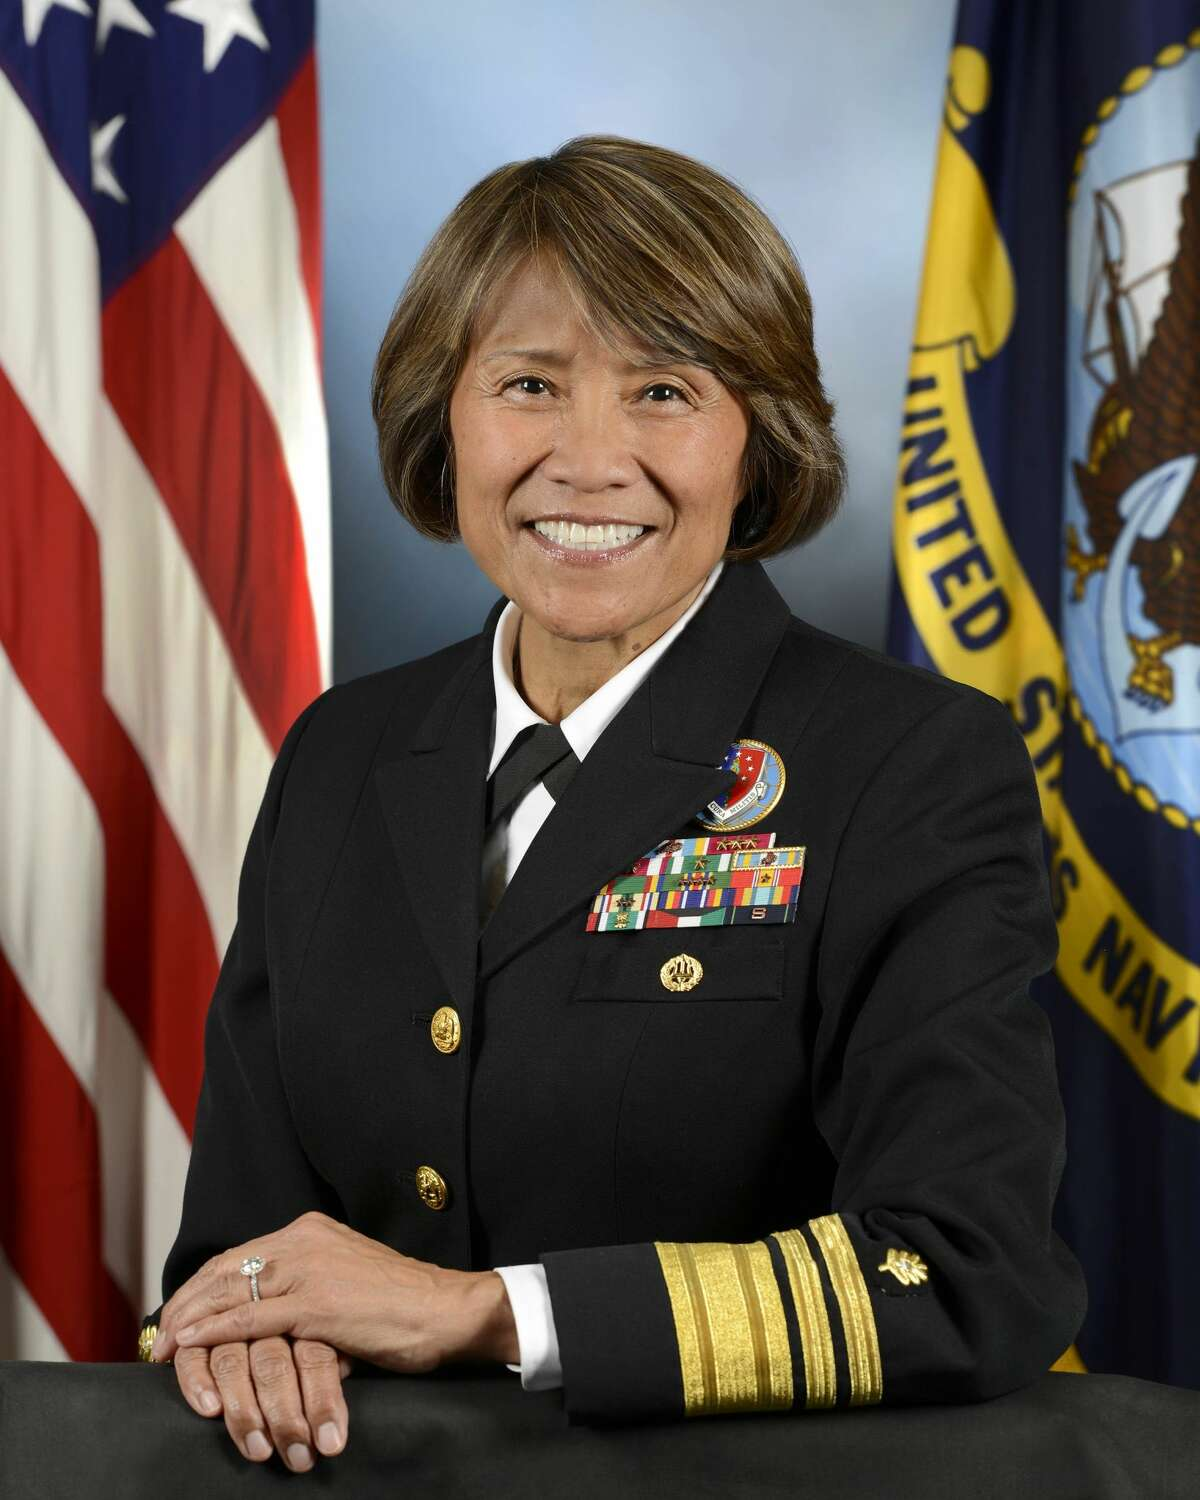 University of Texas Commencement speaker: Raquel C. Bono, a vice admiral in the U.S. Navy and UT alumnus. Date:May 18-19, 2018